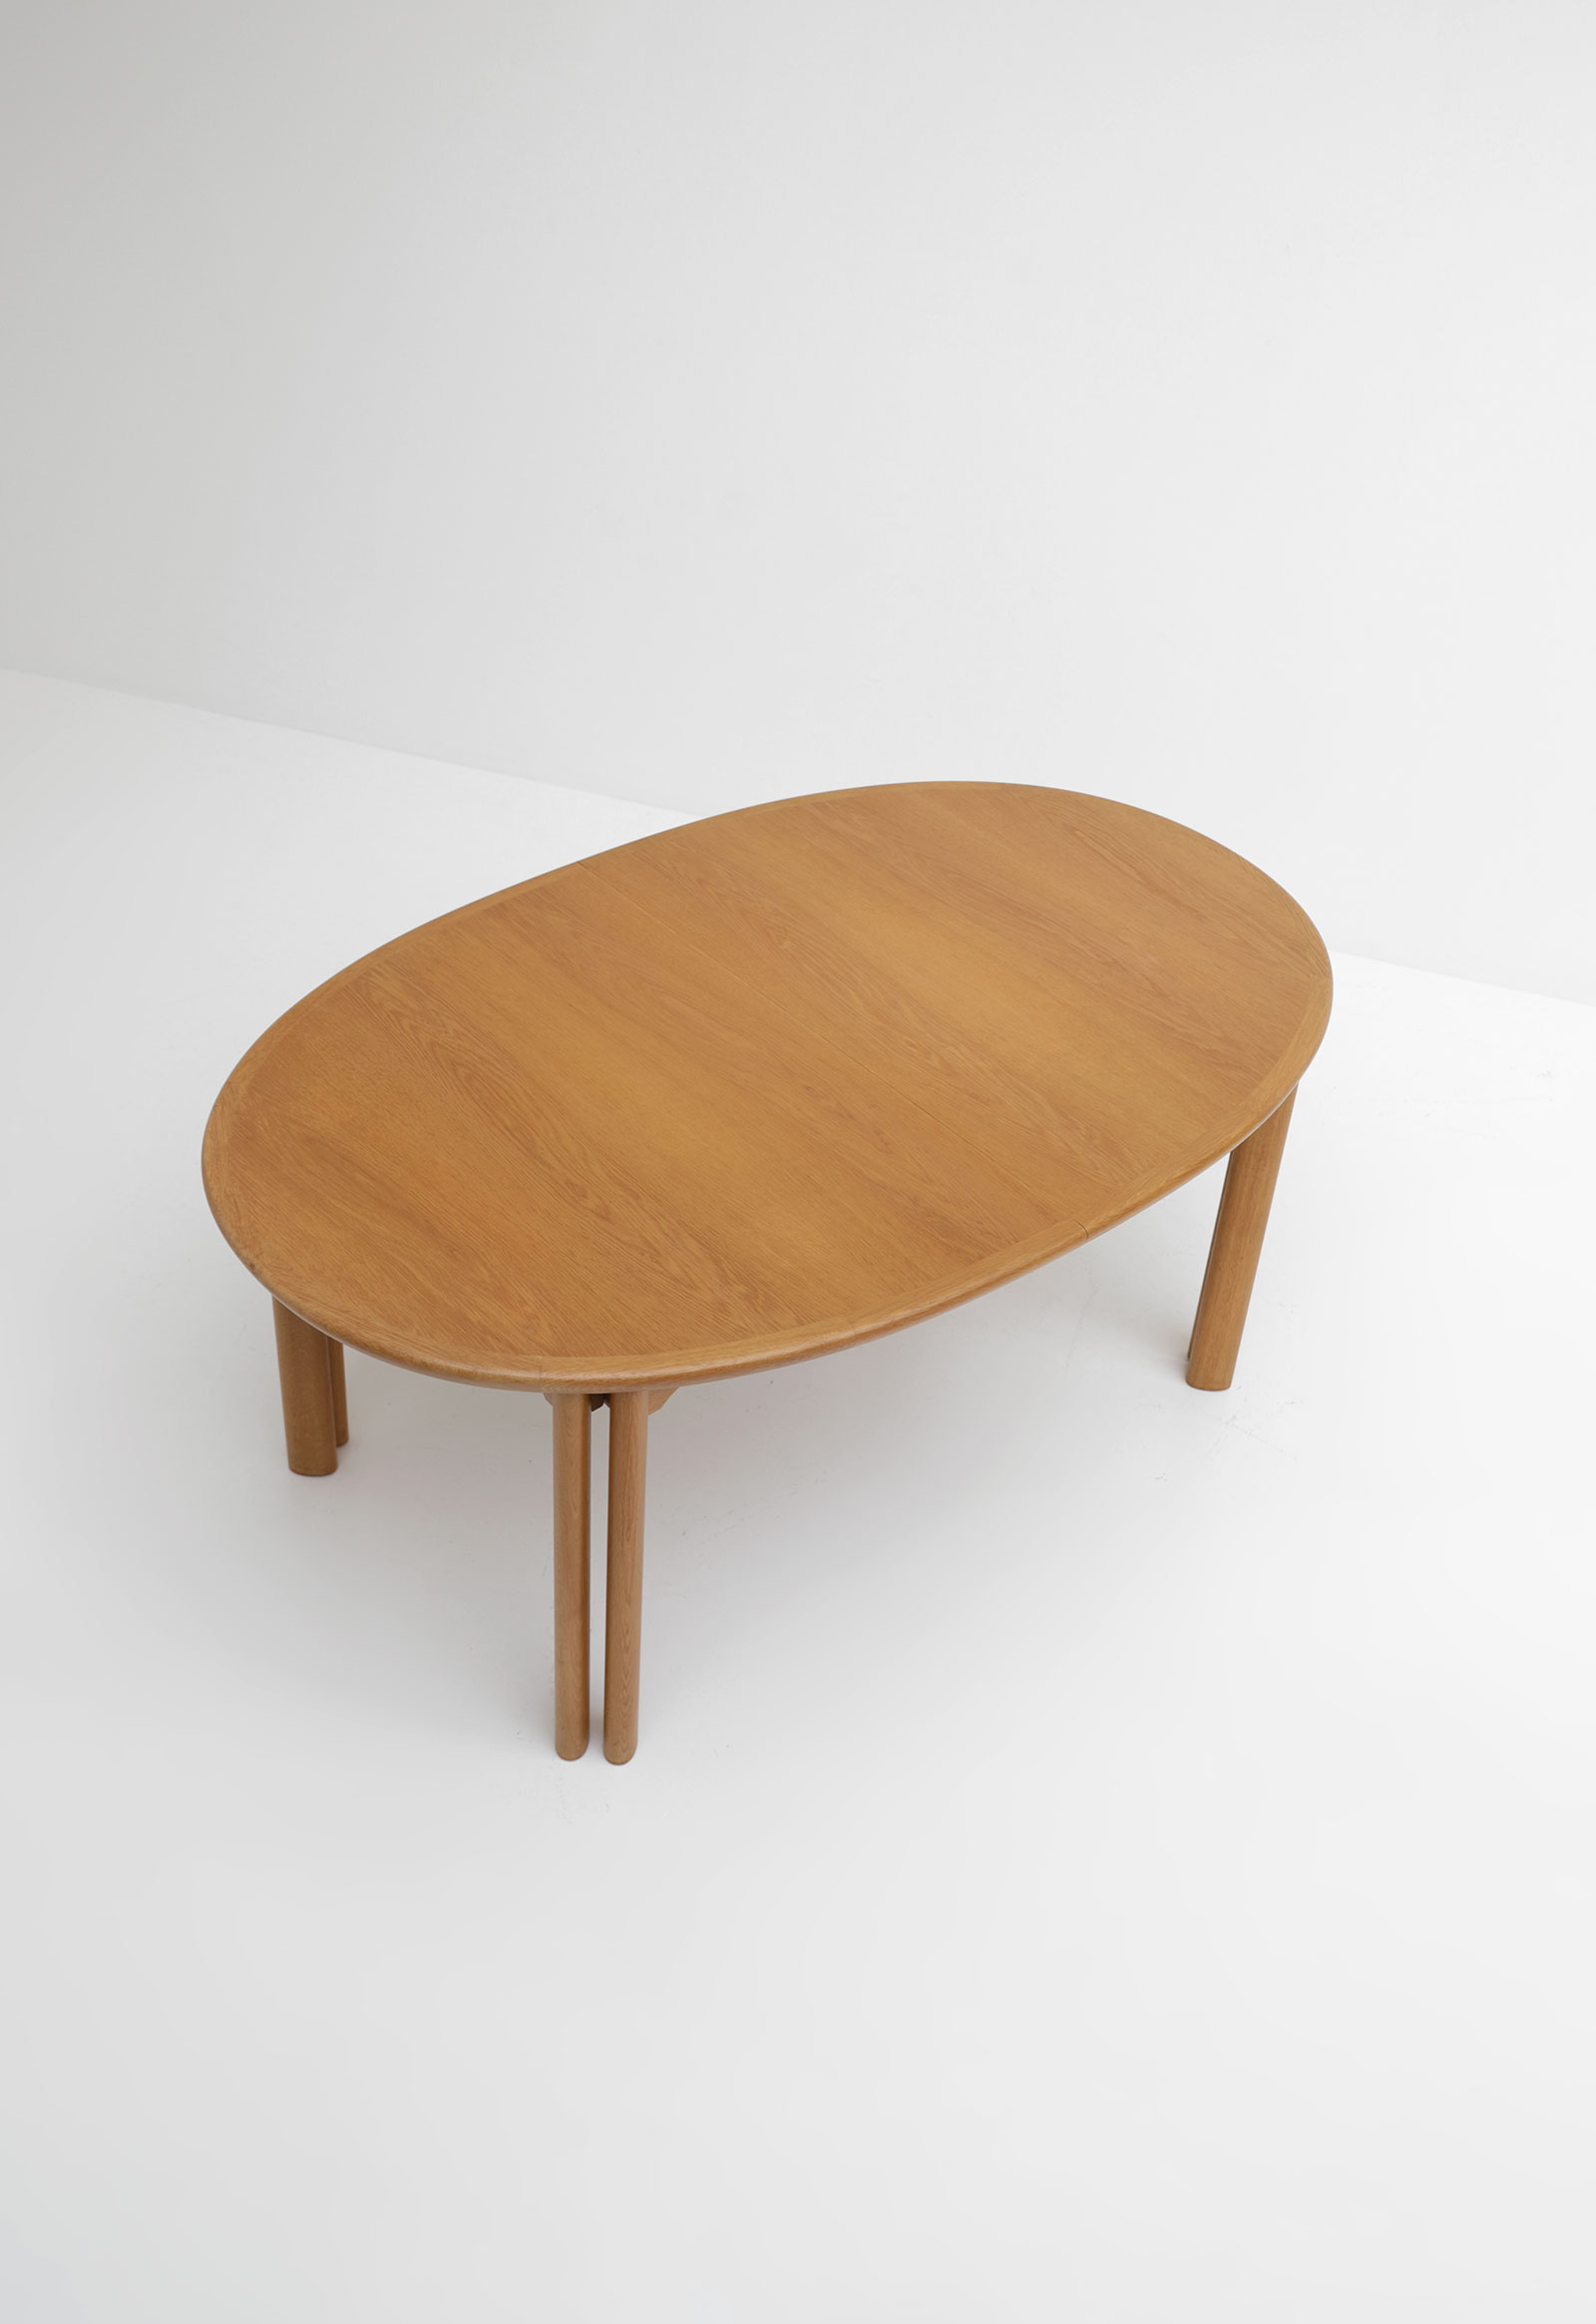 Oak Dining Table Van Den Berghe Pauversimage 4